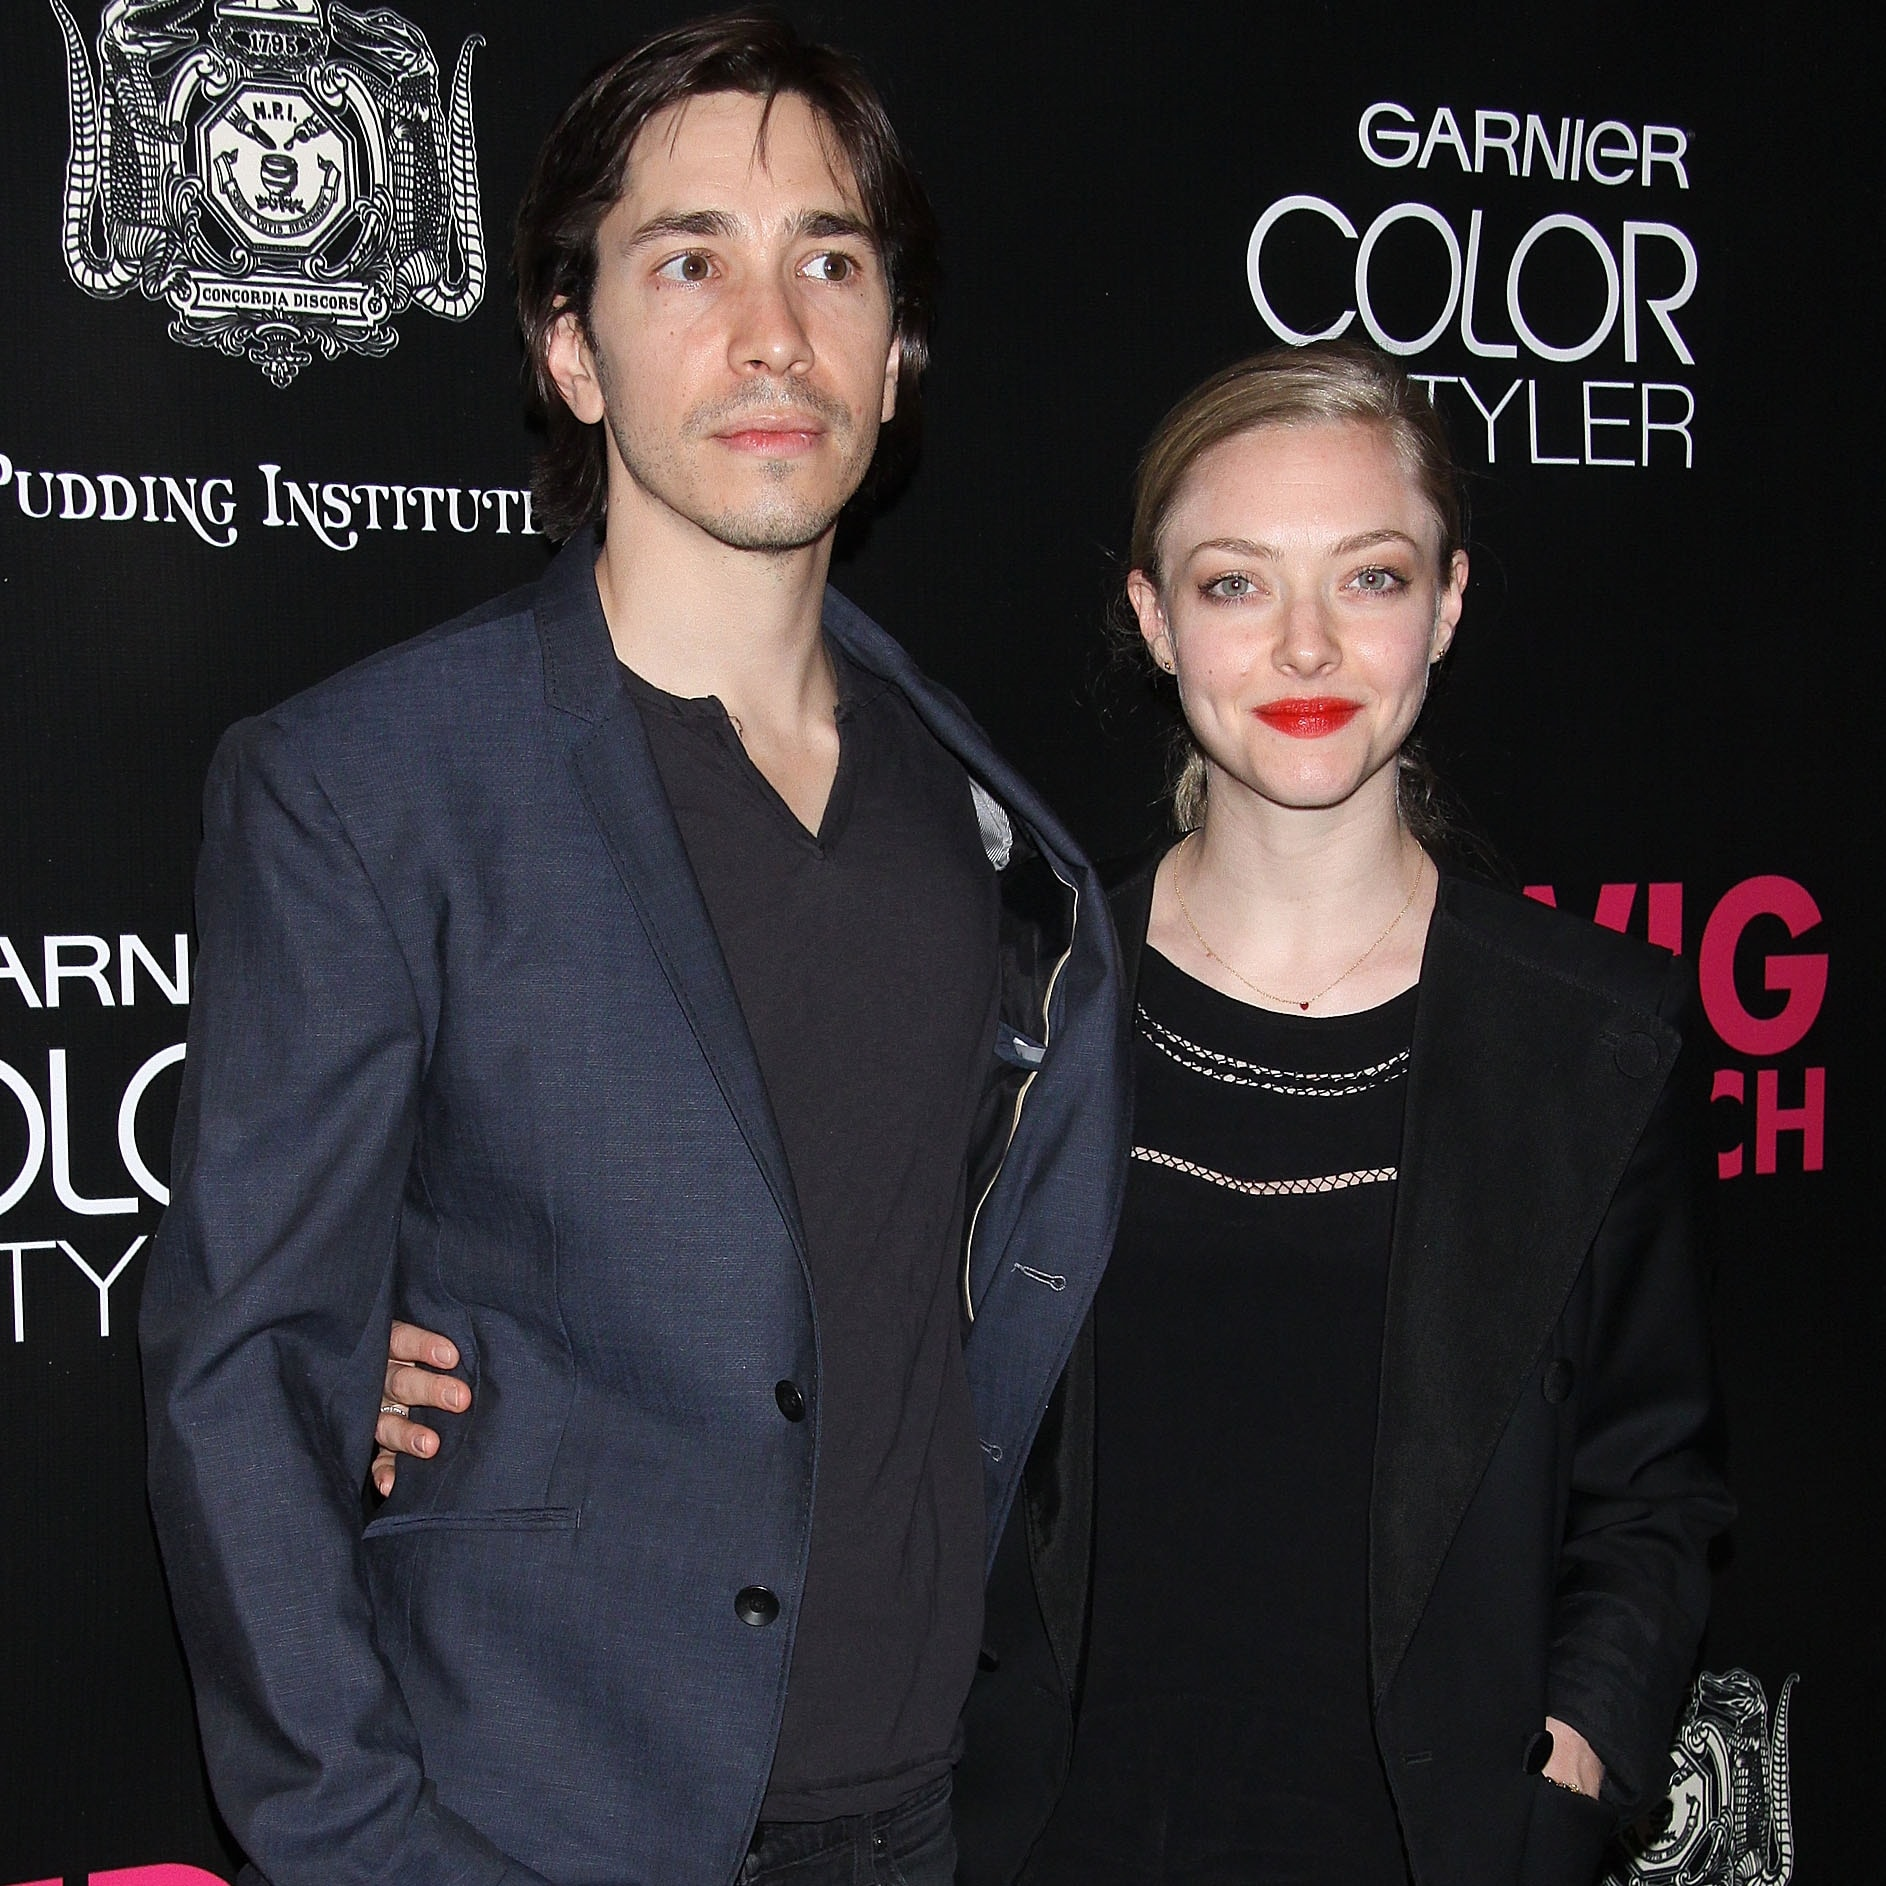 Amanda Seyfried has taken legal action over leaked photos from her vacation with Justin Long